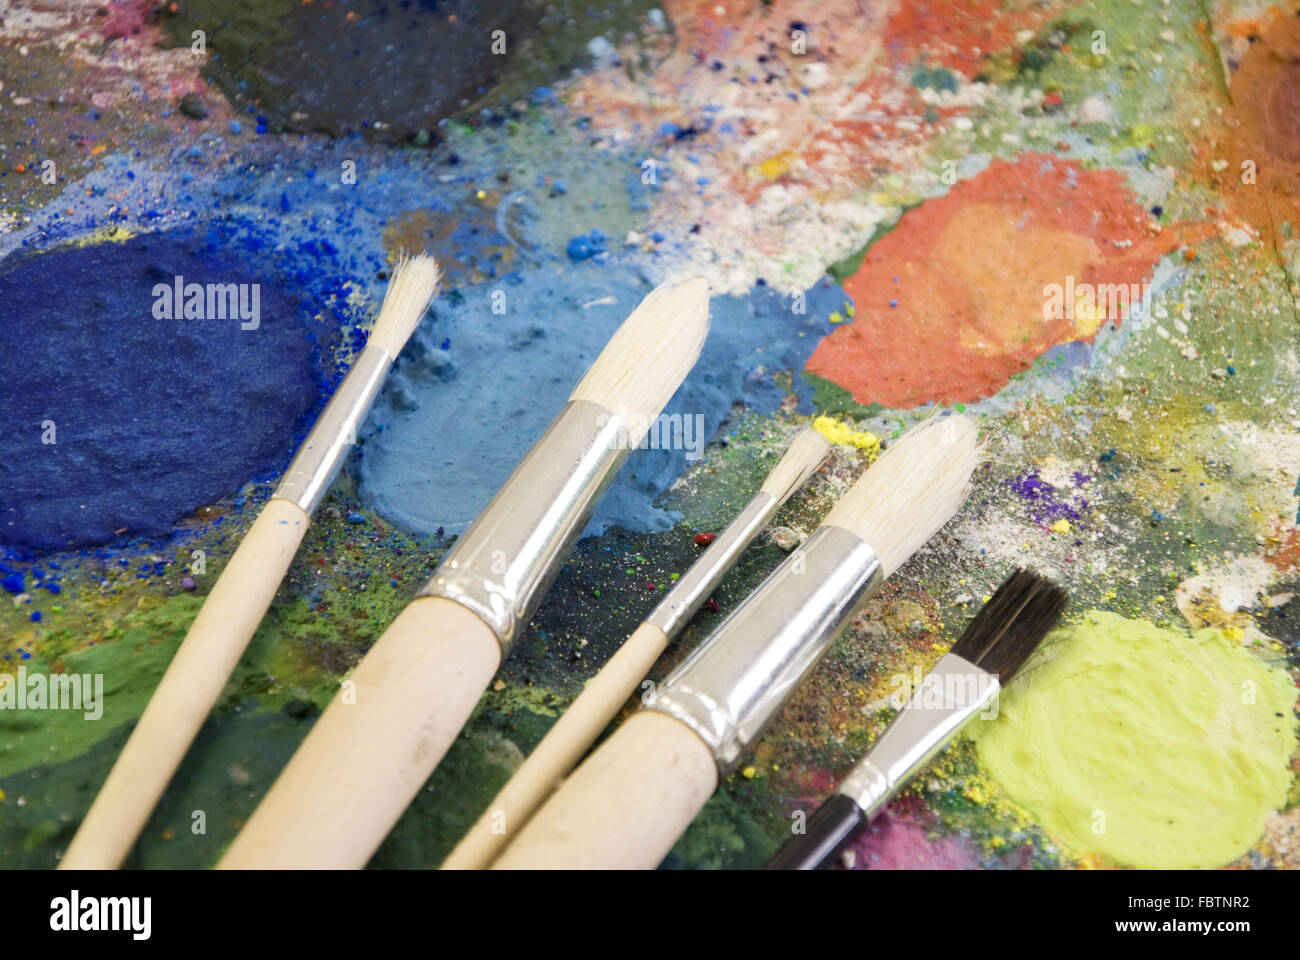 Palette de peinture Photo Stock